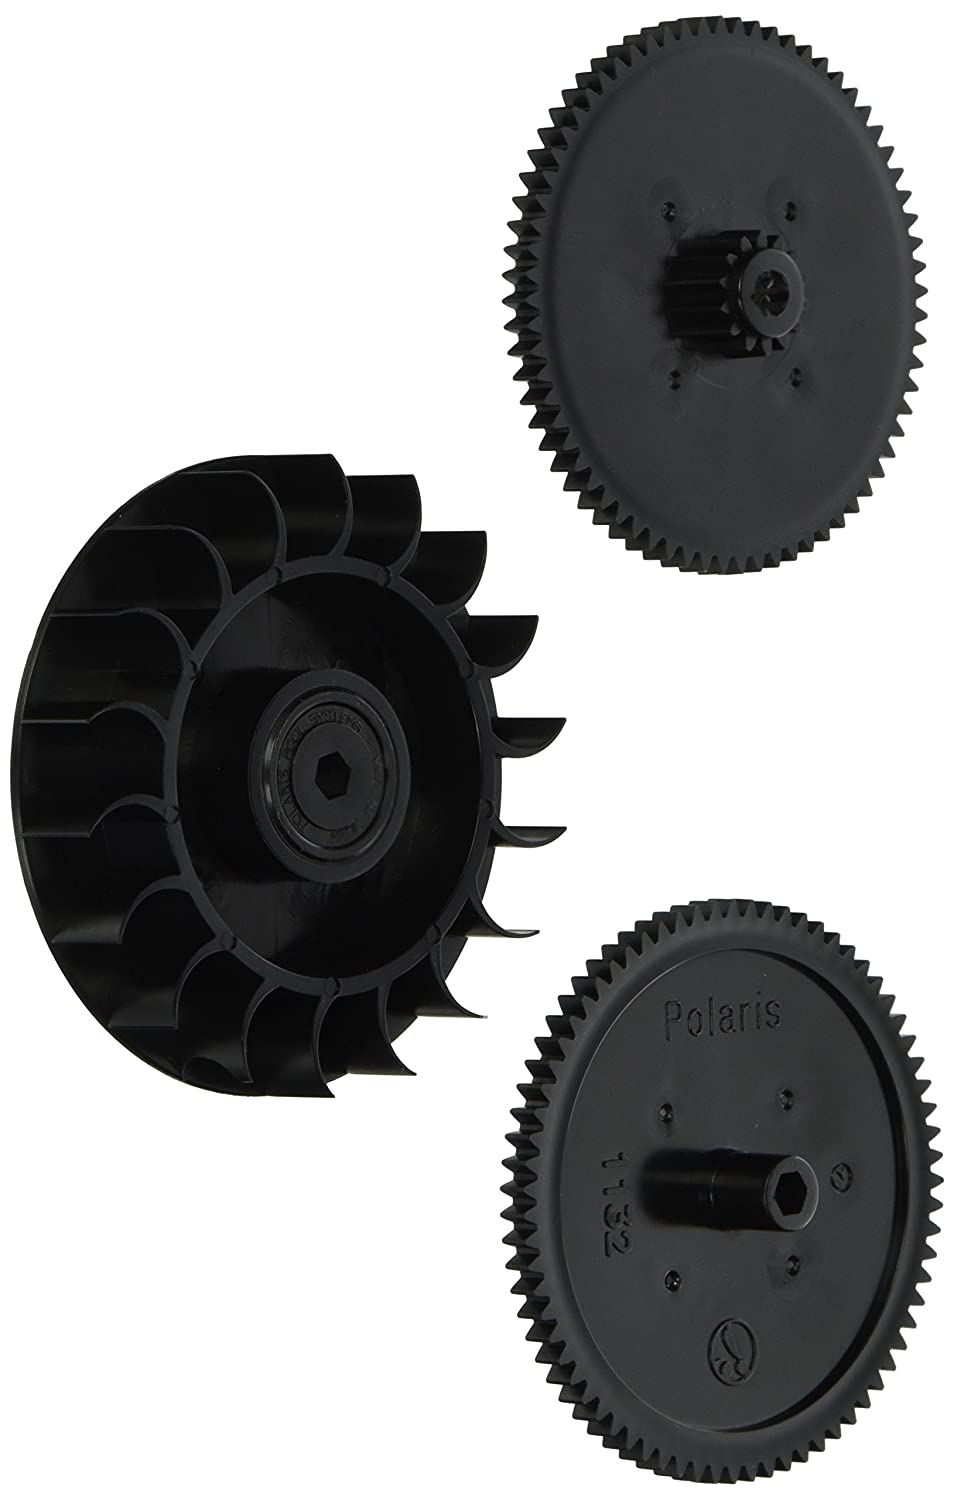 Amazon.com: Zodiac 9-100-1132 Drive Train Gear Kit with Turbine Bearing  Replacement: Garden & Outdoor